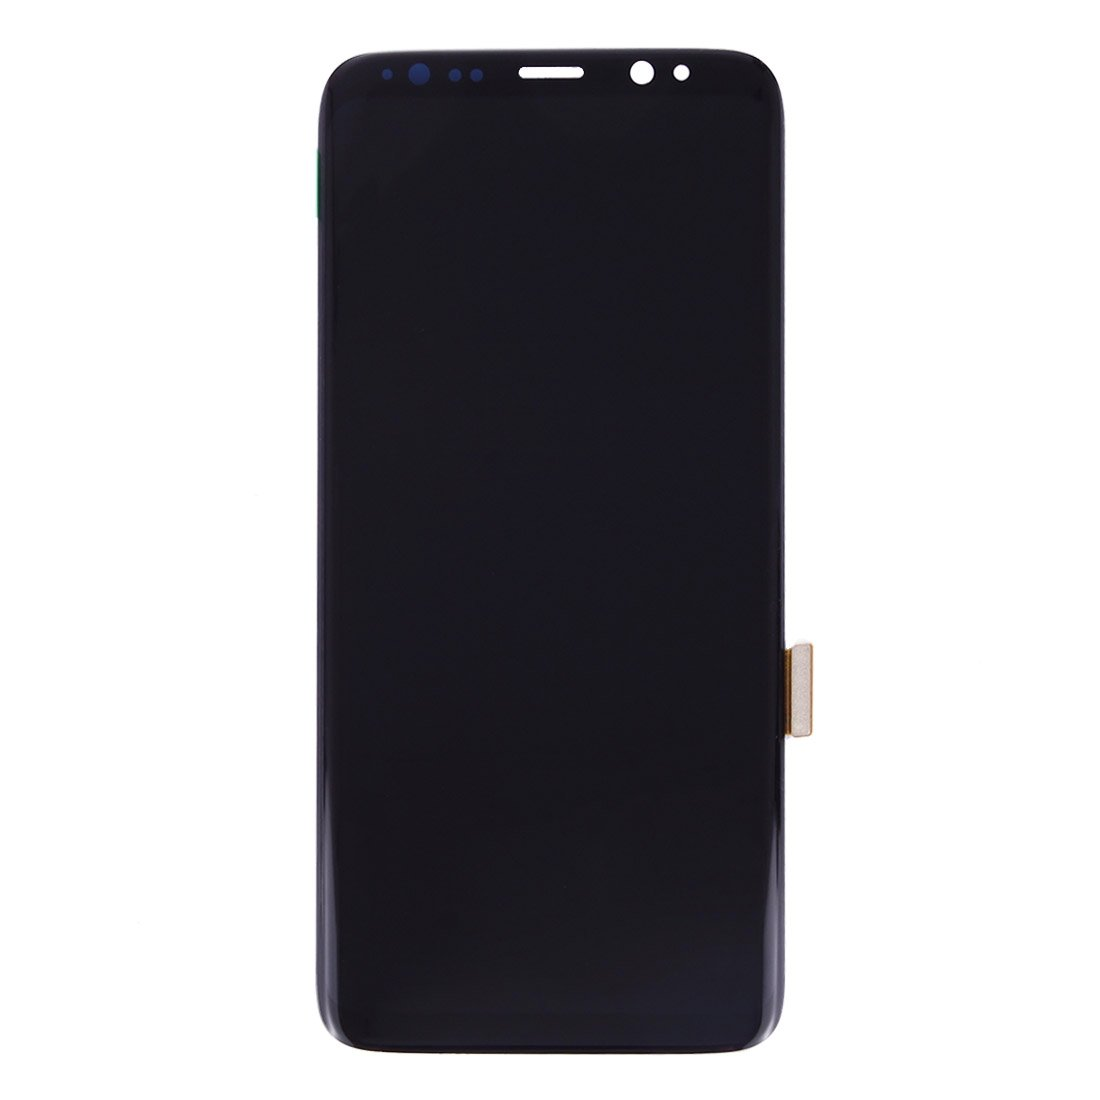 WANGYING Wangying New LCD Screen + New Touch Panel for Galaxy S8 / G950 / G950F / G950FD / G950U / G950A / G950P / G950T / G950V / G950R4 / G950W / G9500(Black) (Color : Black)